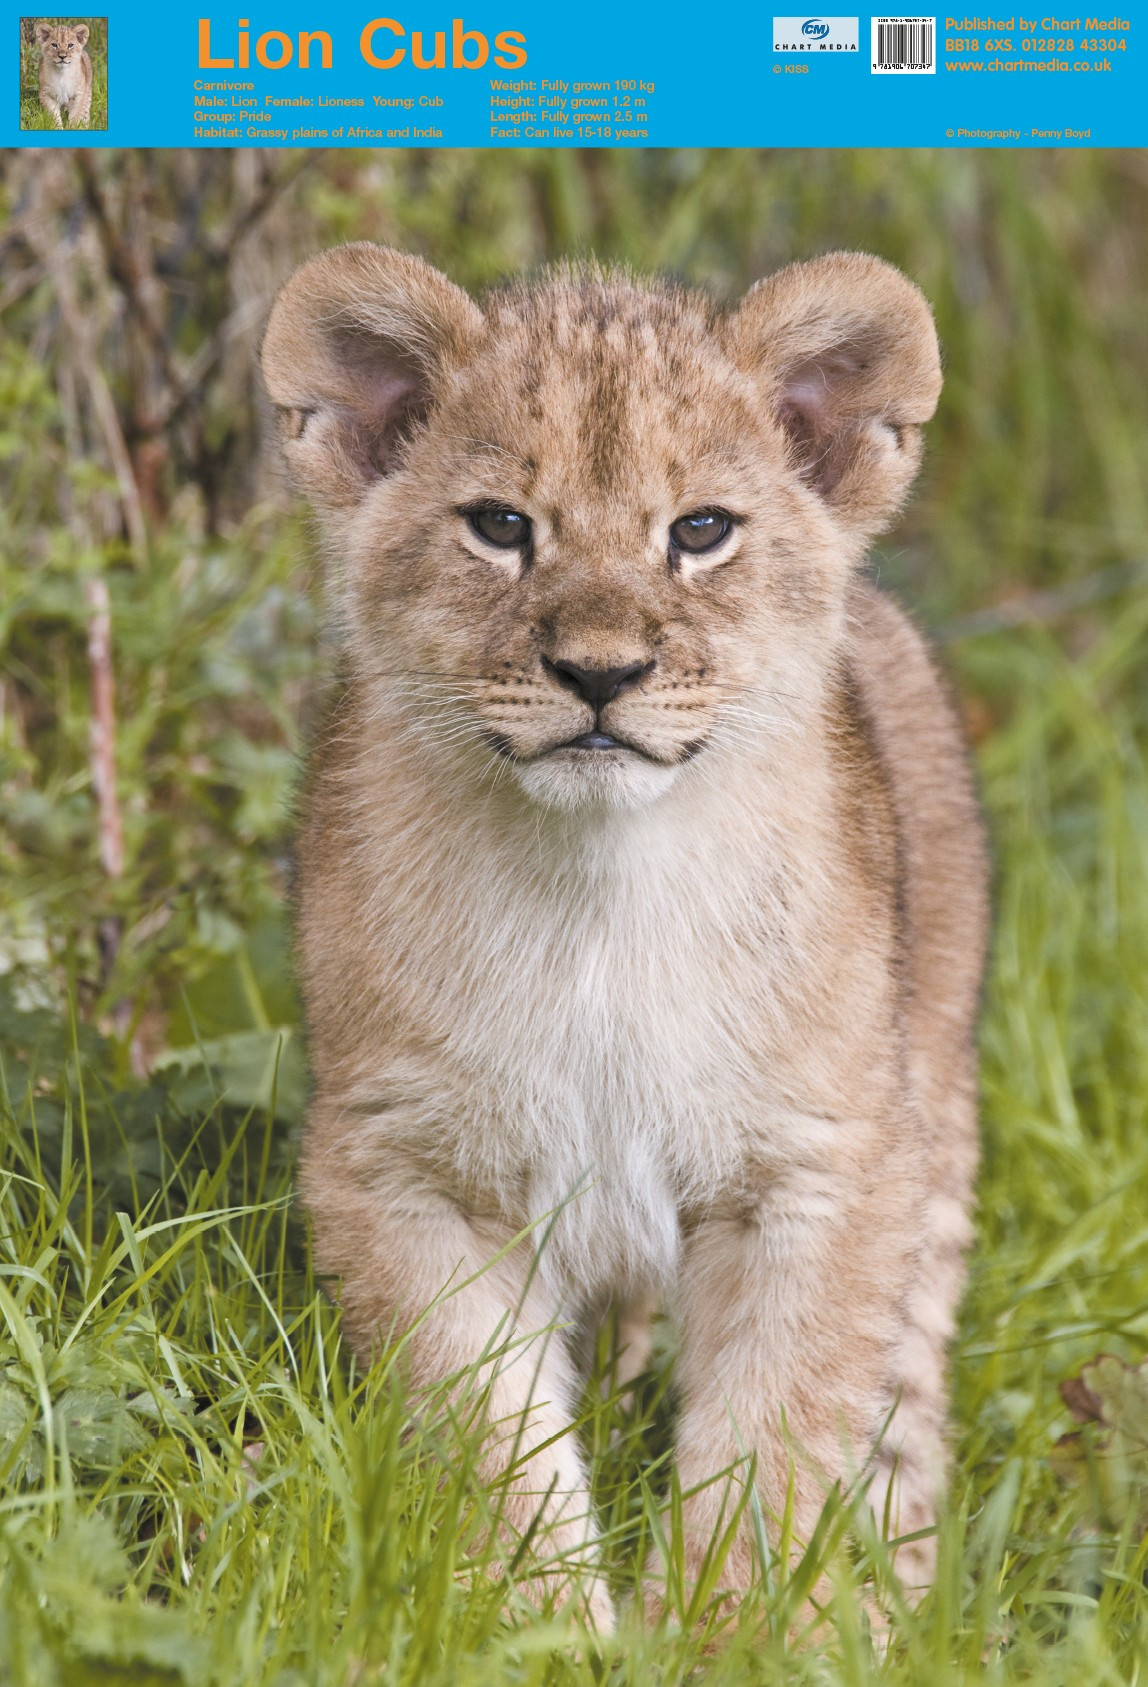 Posters Uk Lion Cub Posters Wholesale Wall Posters Free